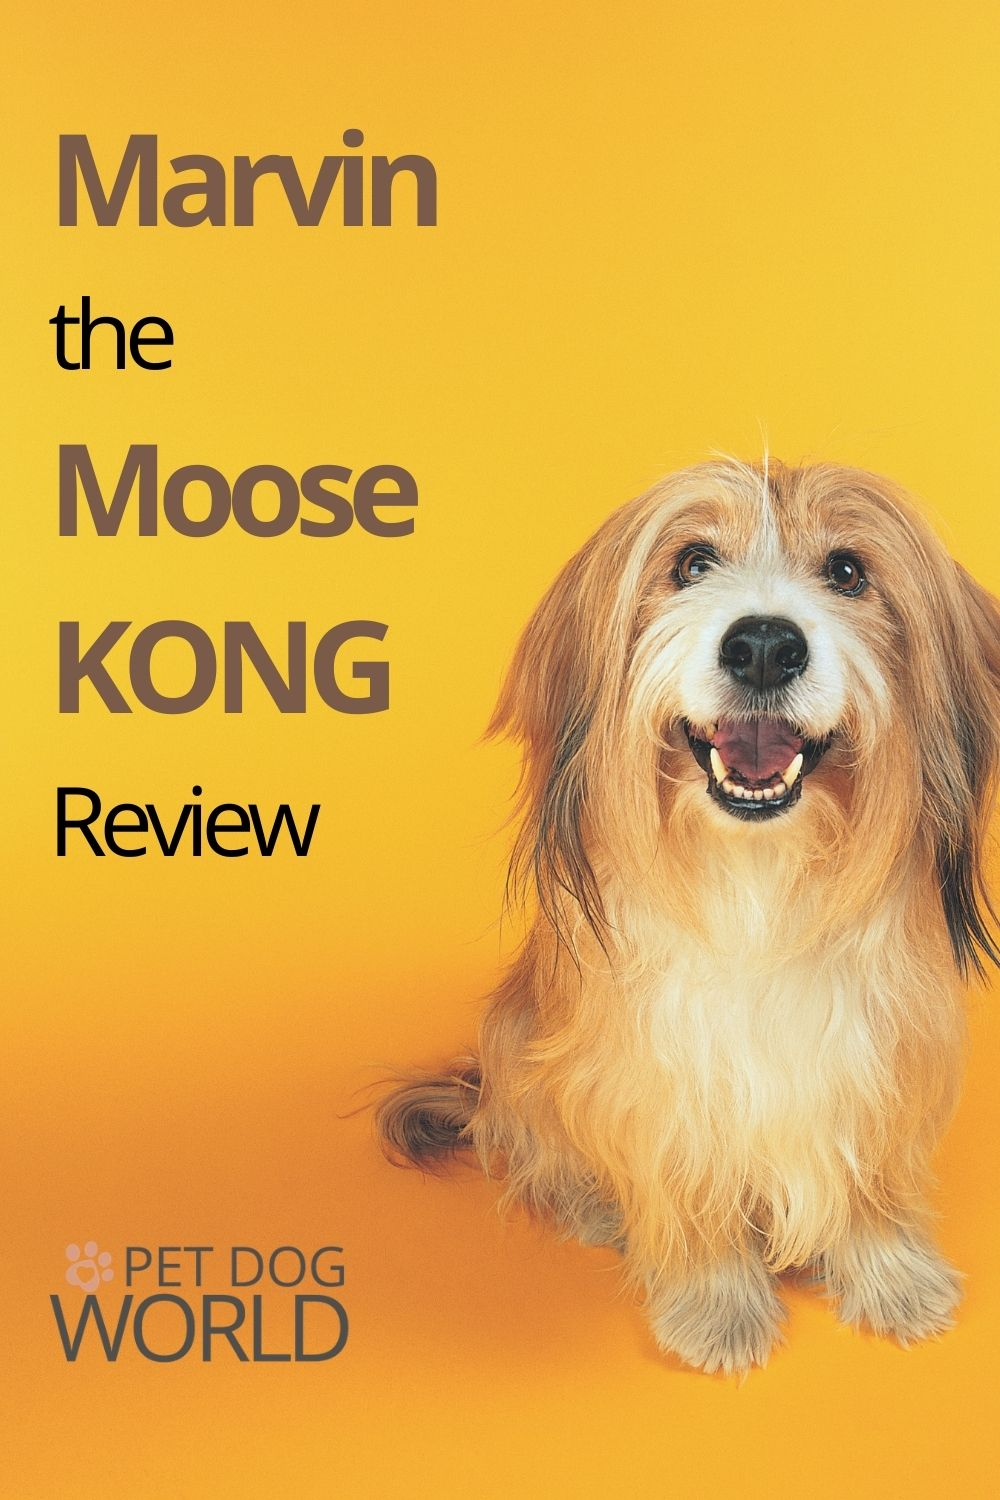 Marvin the Moose KONG Review